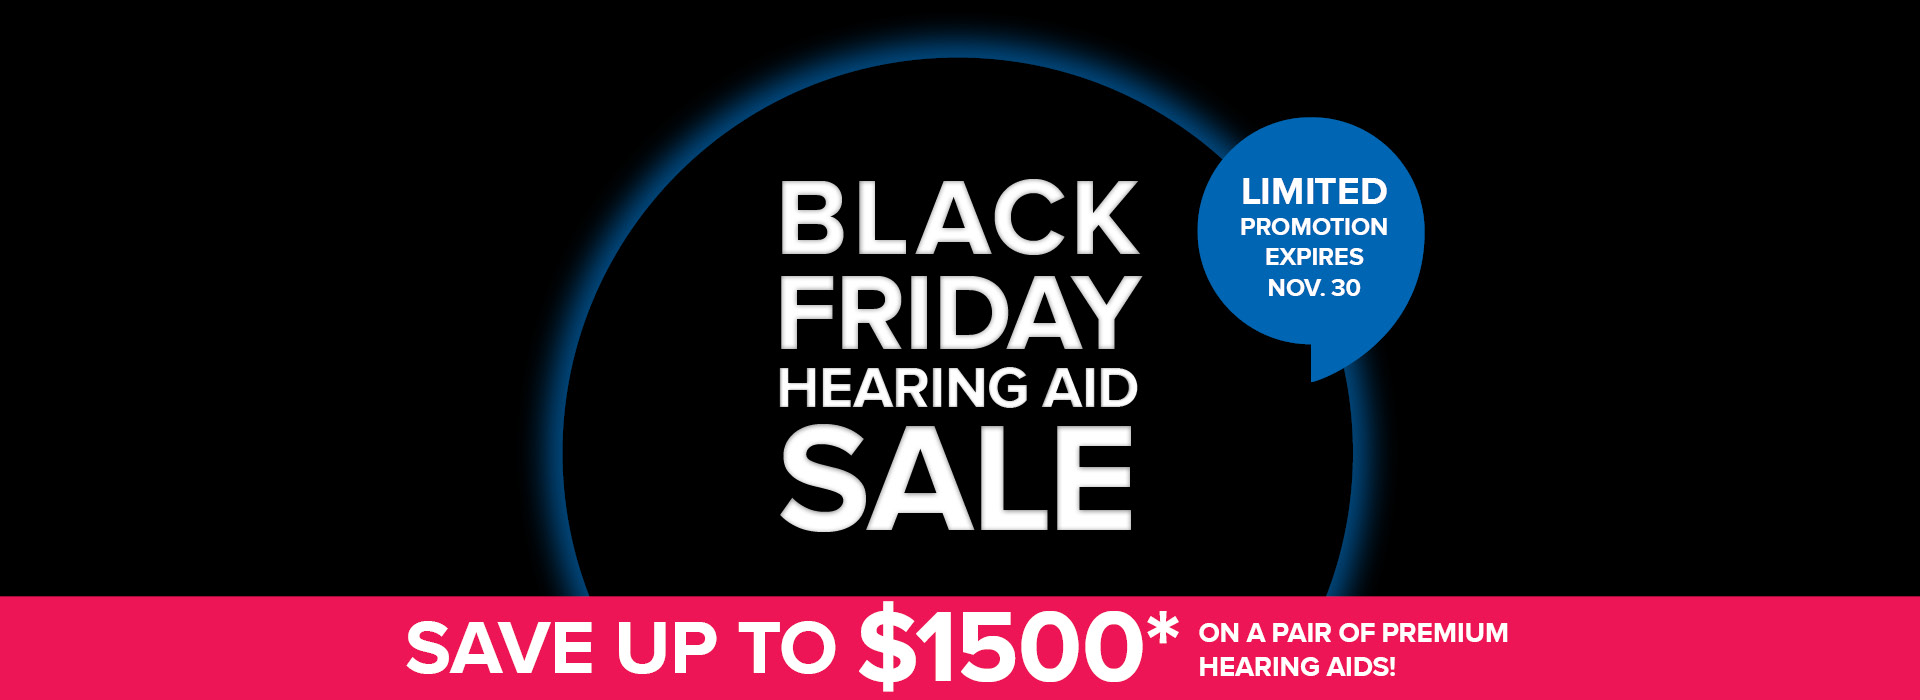 BLACK FRIDAY SALE - Save up to $1500 on a pair of premium hearing aids!